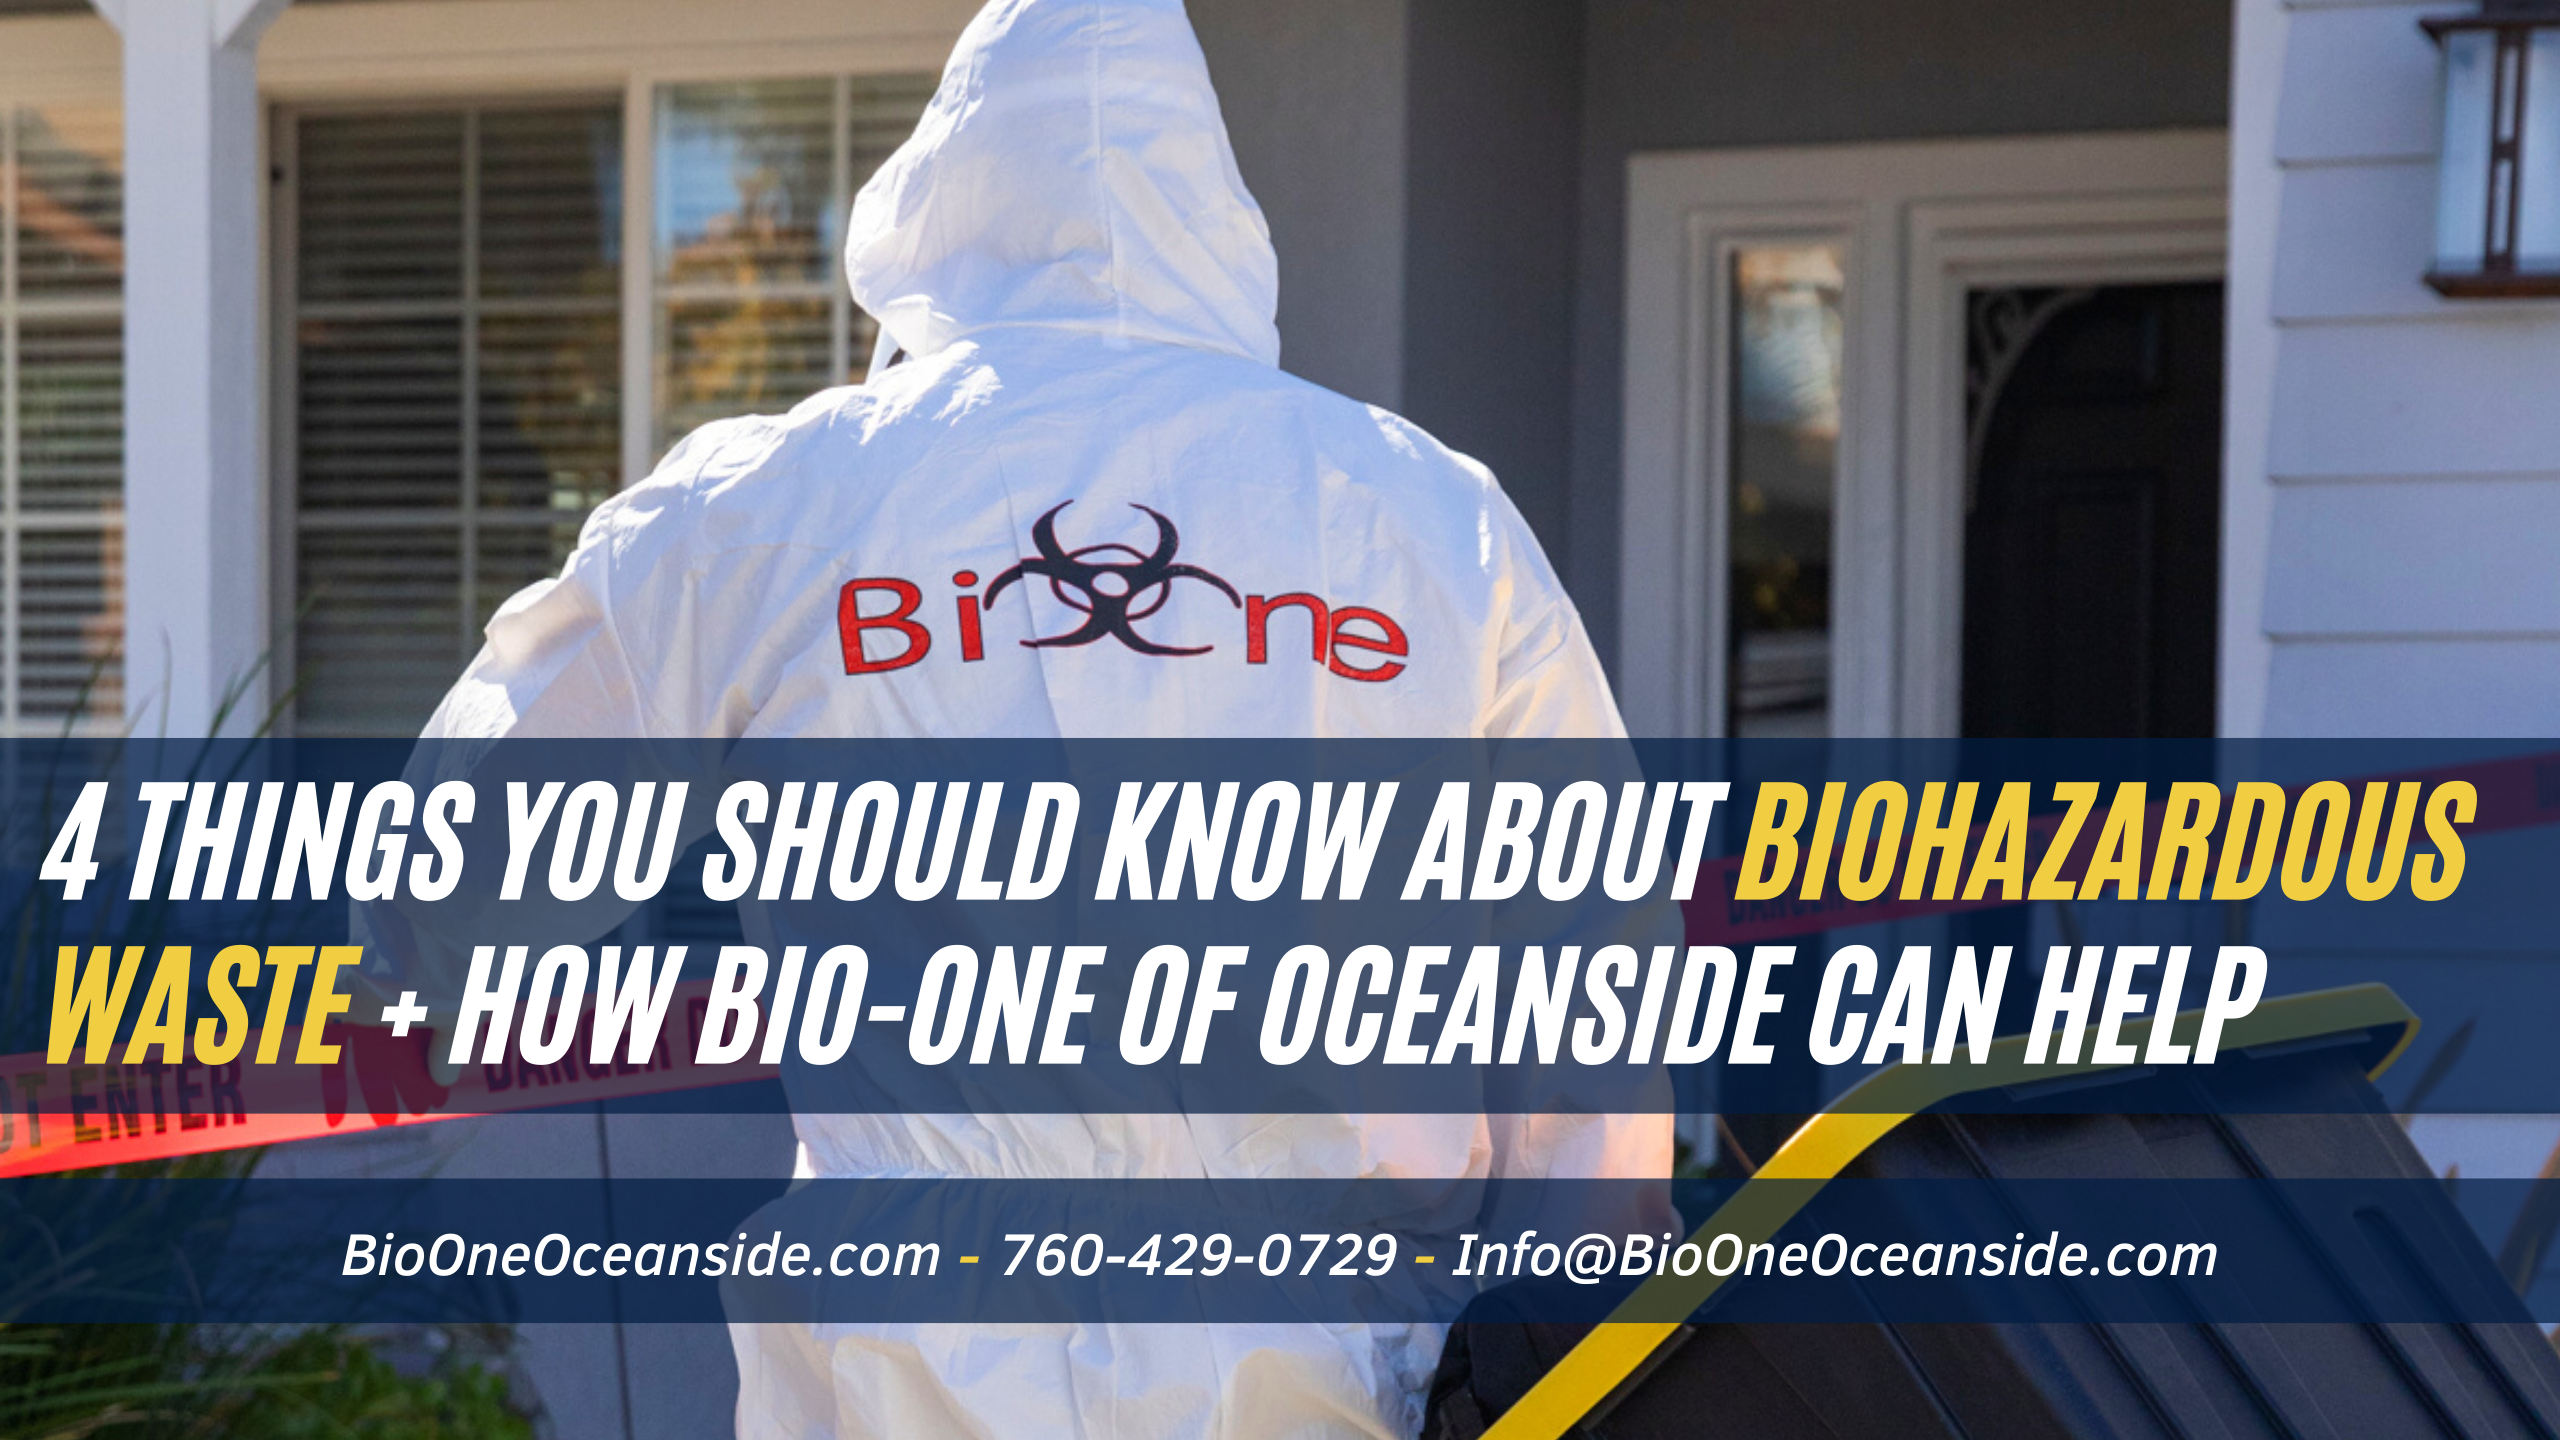 4 things you should know about Biohazardous waste and why you should trust Bio-One of Oceanside to remove them